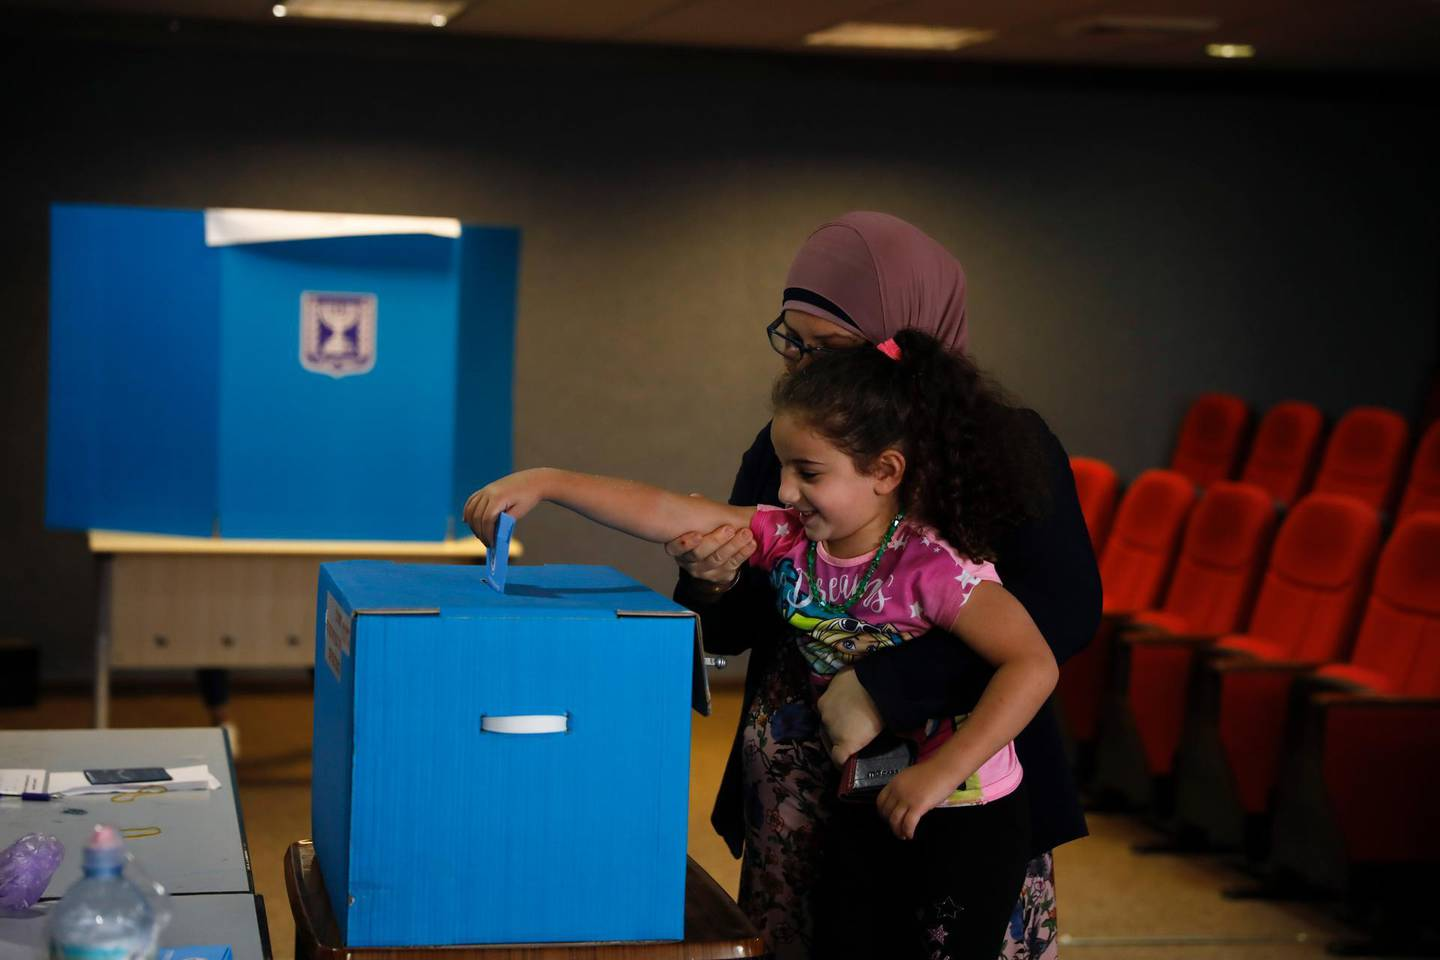 Israeli Arabs vote in Kfar Manda, an Arab town in Israel, Tuesday, Sept. 17, 2019. Israelis began voting Tuesday in an unprecedented repeat election that will decide whether longtime Prime Minister Benjamin Netanyahu stays in power despite a looming indictment on corruption charges. (AP Photo/Ariel Schalit)